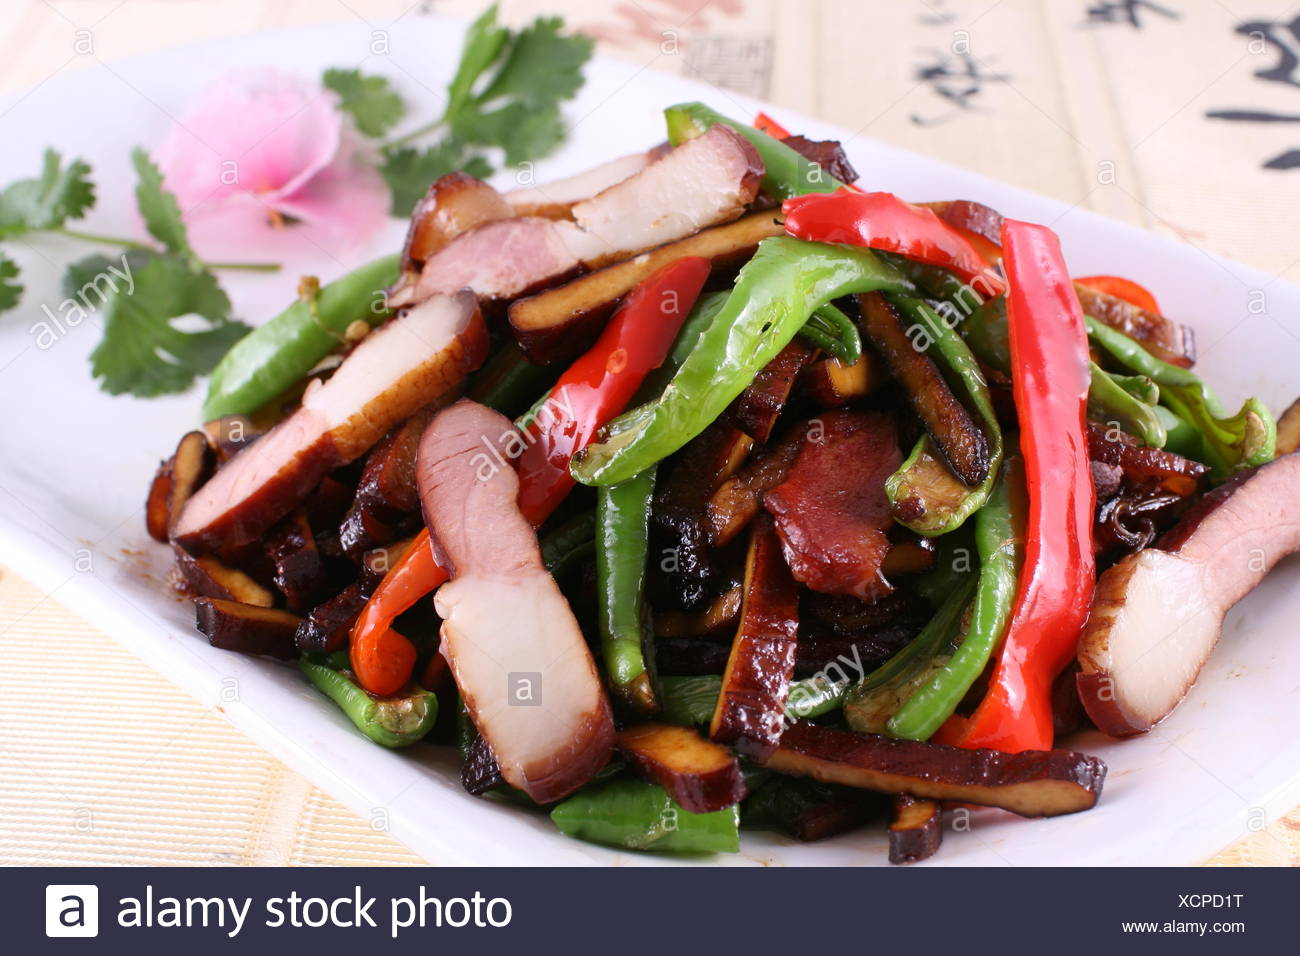 fried bacon and smoked tofu with green chilli - Stock Image